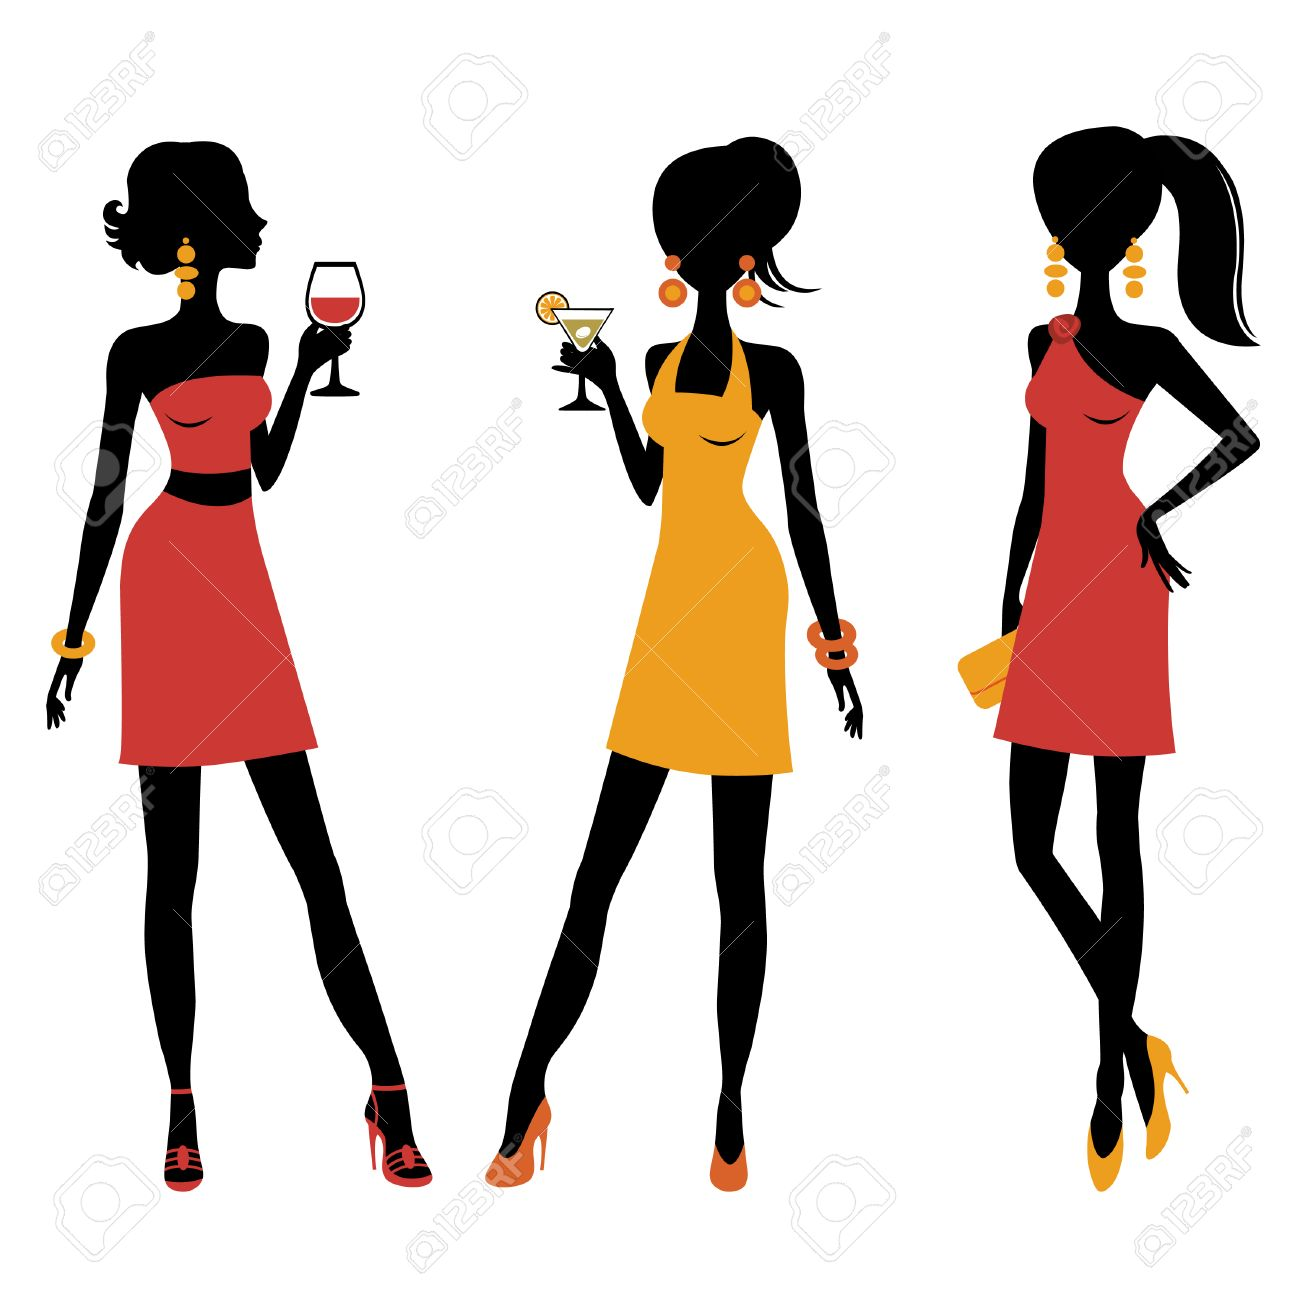 Clipart of girl at a party banner stock Cocktail Party Clipart | Free download best Cocktail Party Clipart ... banner stock